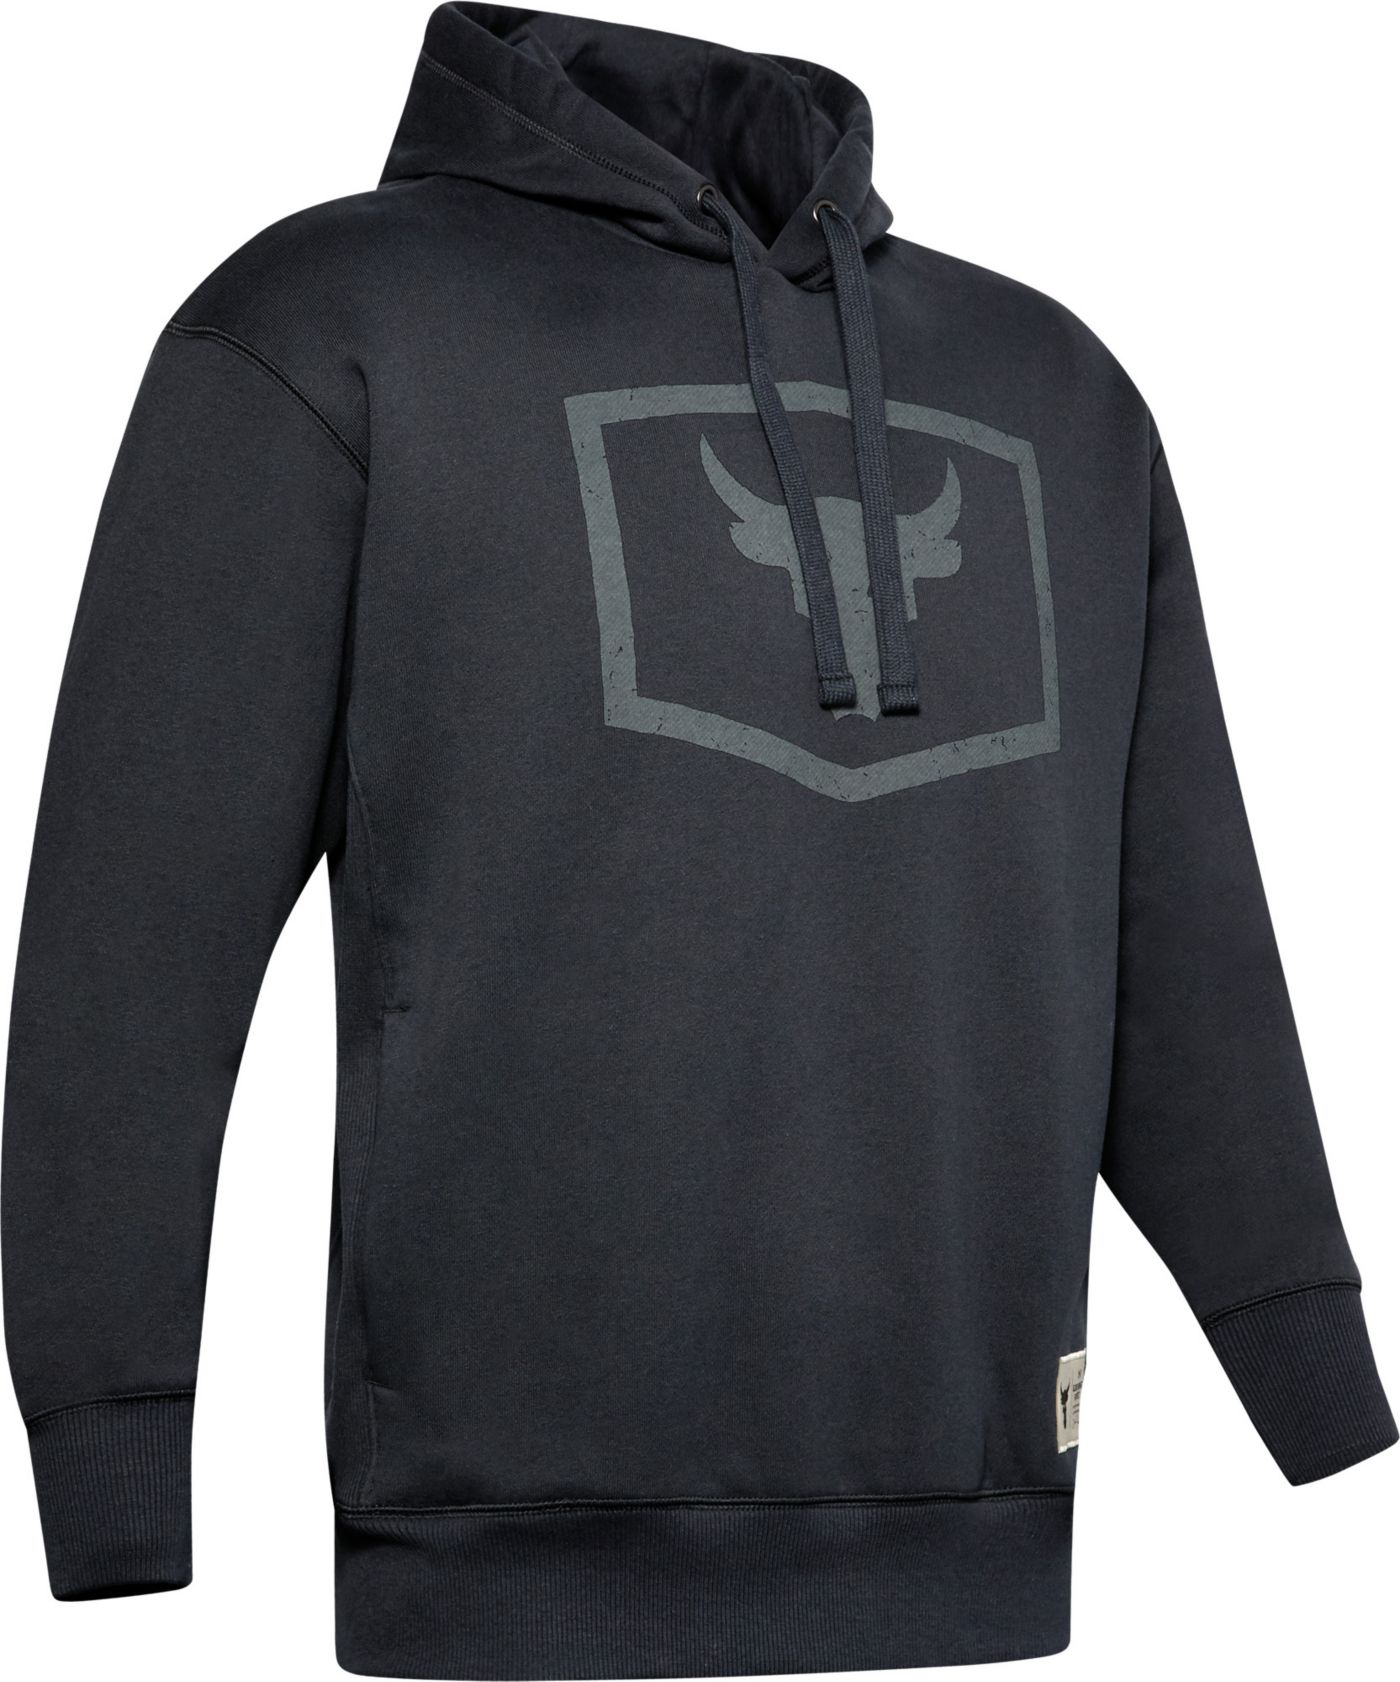 Under Armour Men's Project Rock Warm Up Hoodie